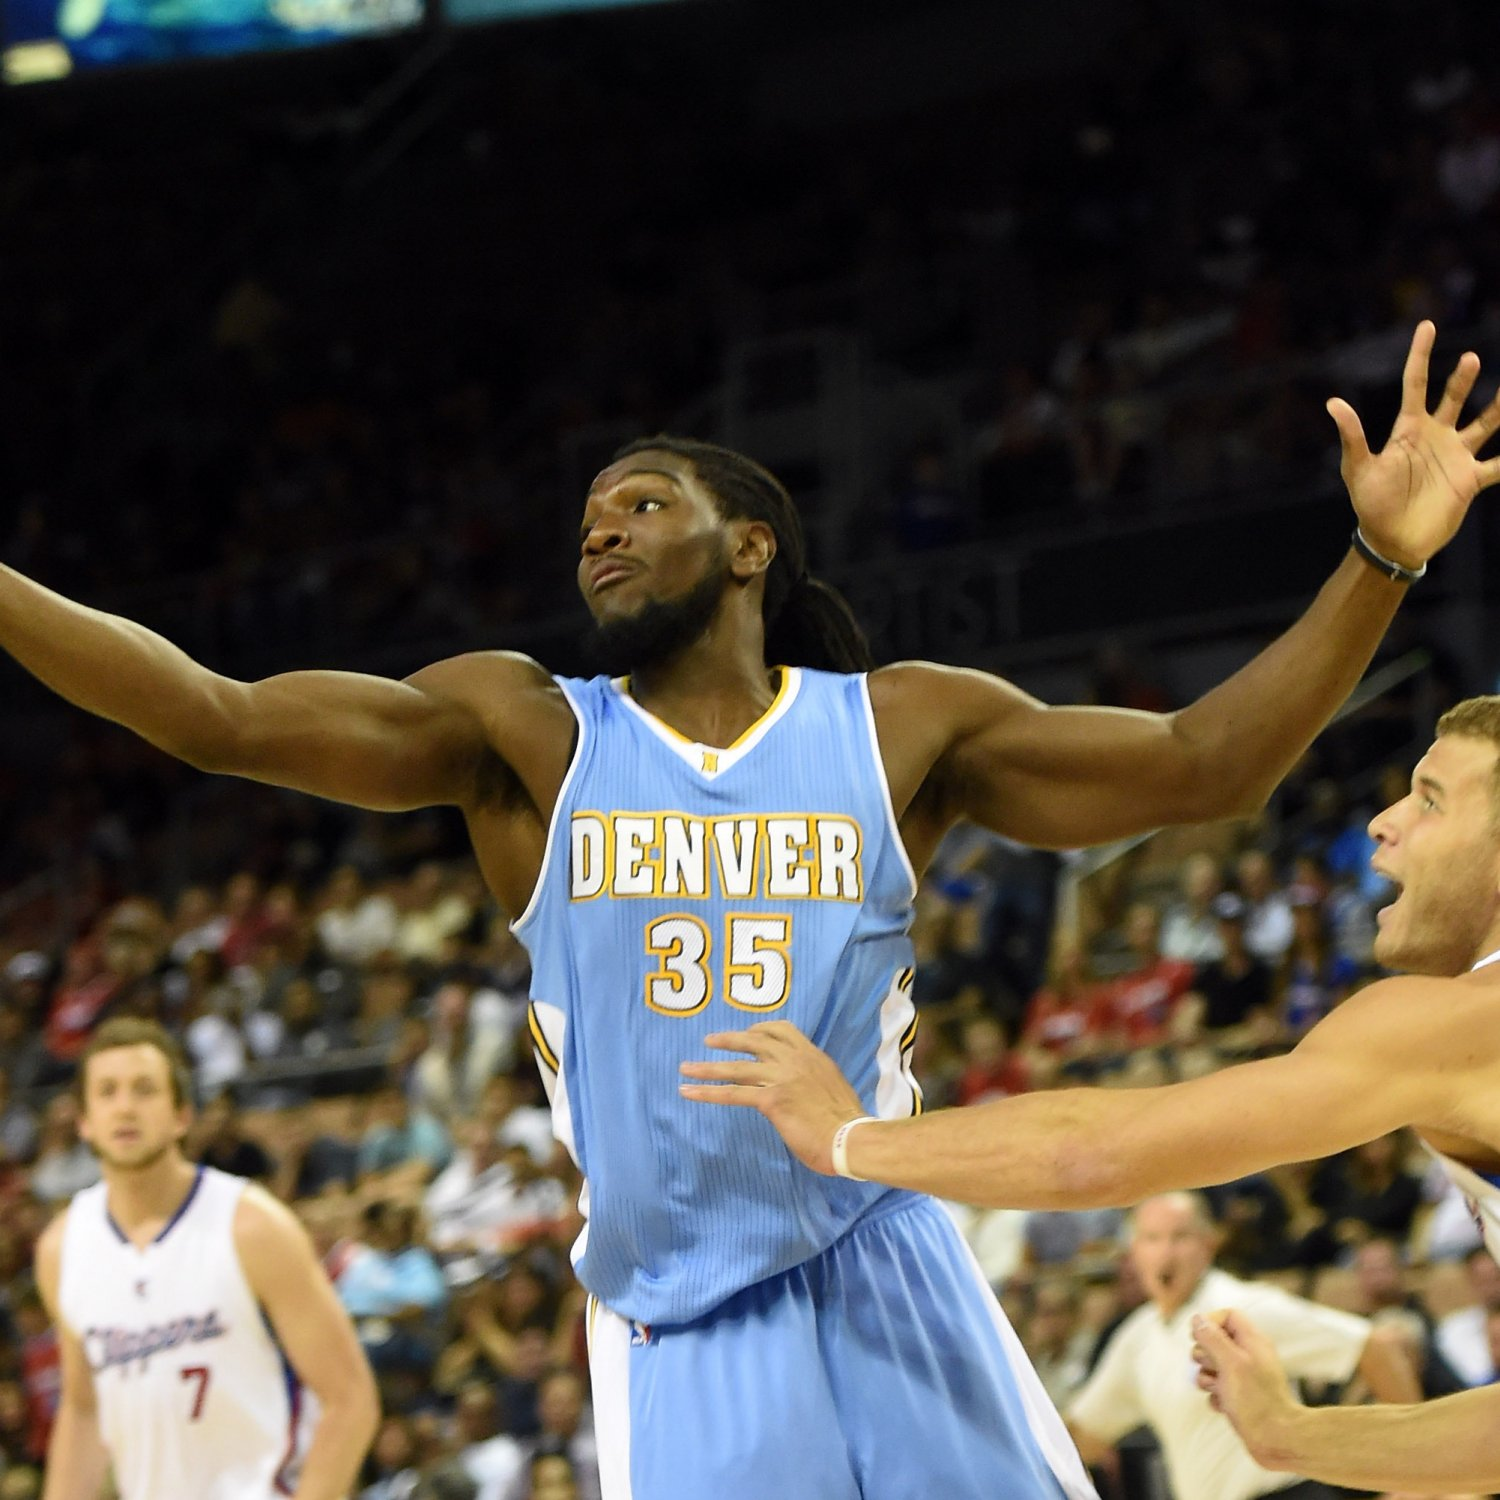 Nuggets Clippers Highlights: Denver Nuggets Vs. Los Angeles Clippers 10/18/14: Video